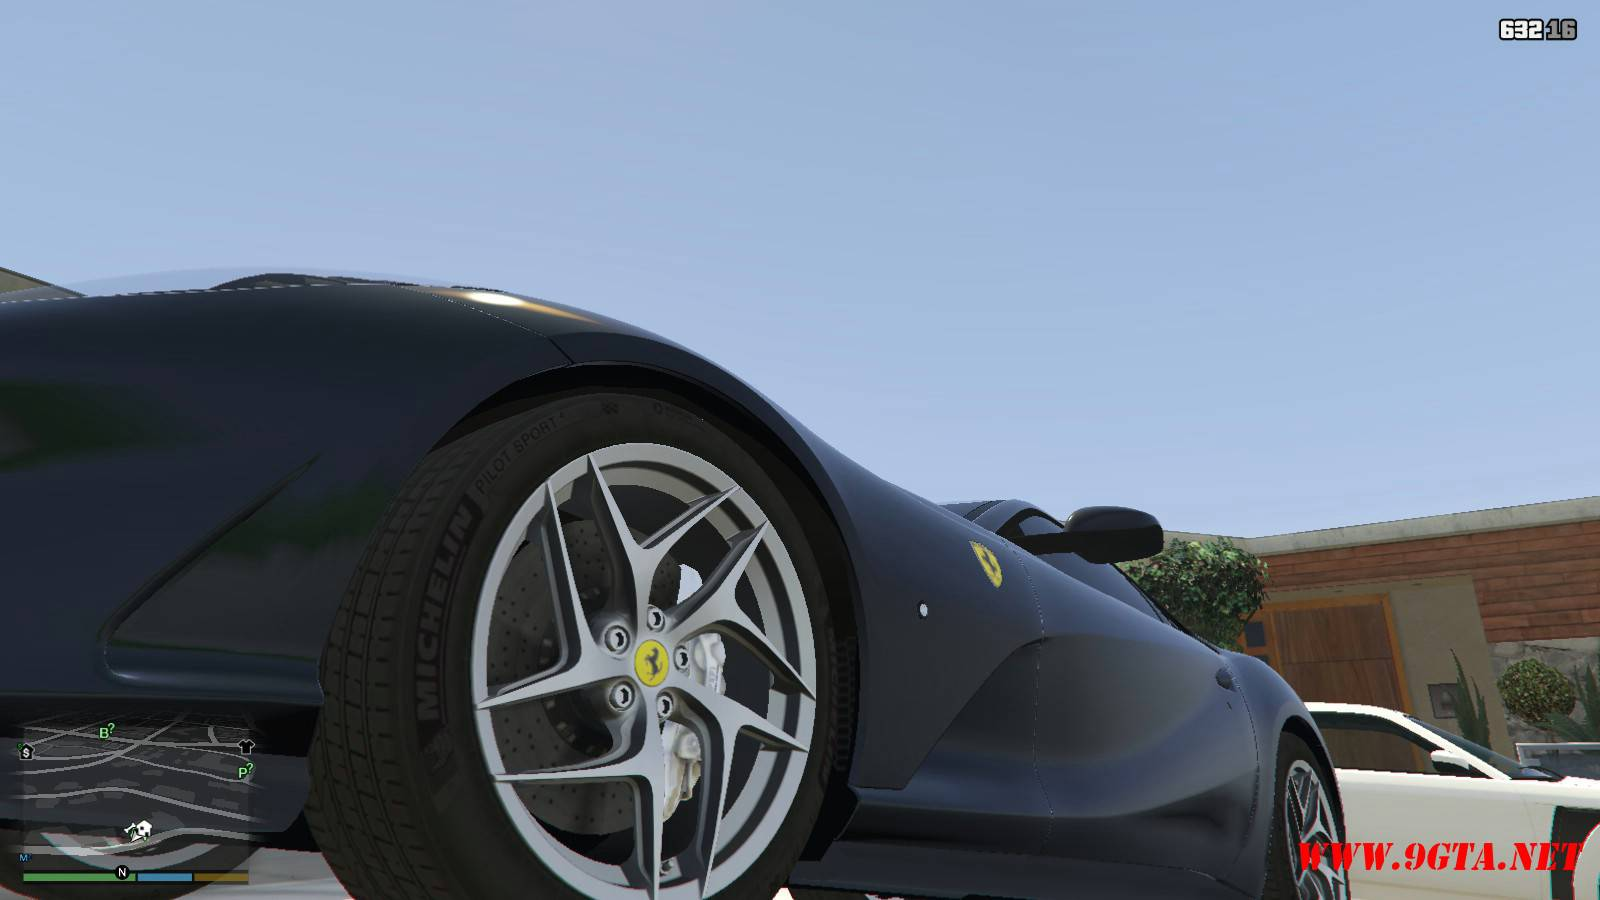 2018 Ferrari 812 Superfast Mod For GTA5 (3)